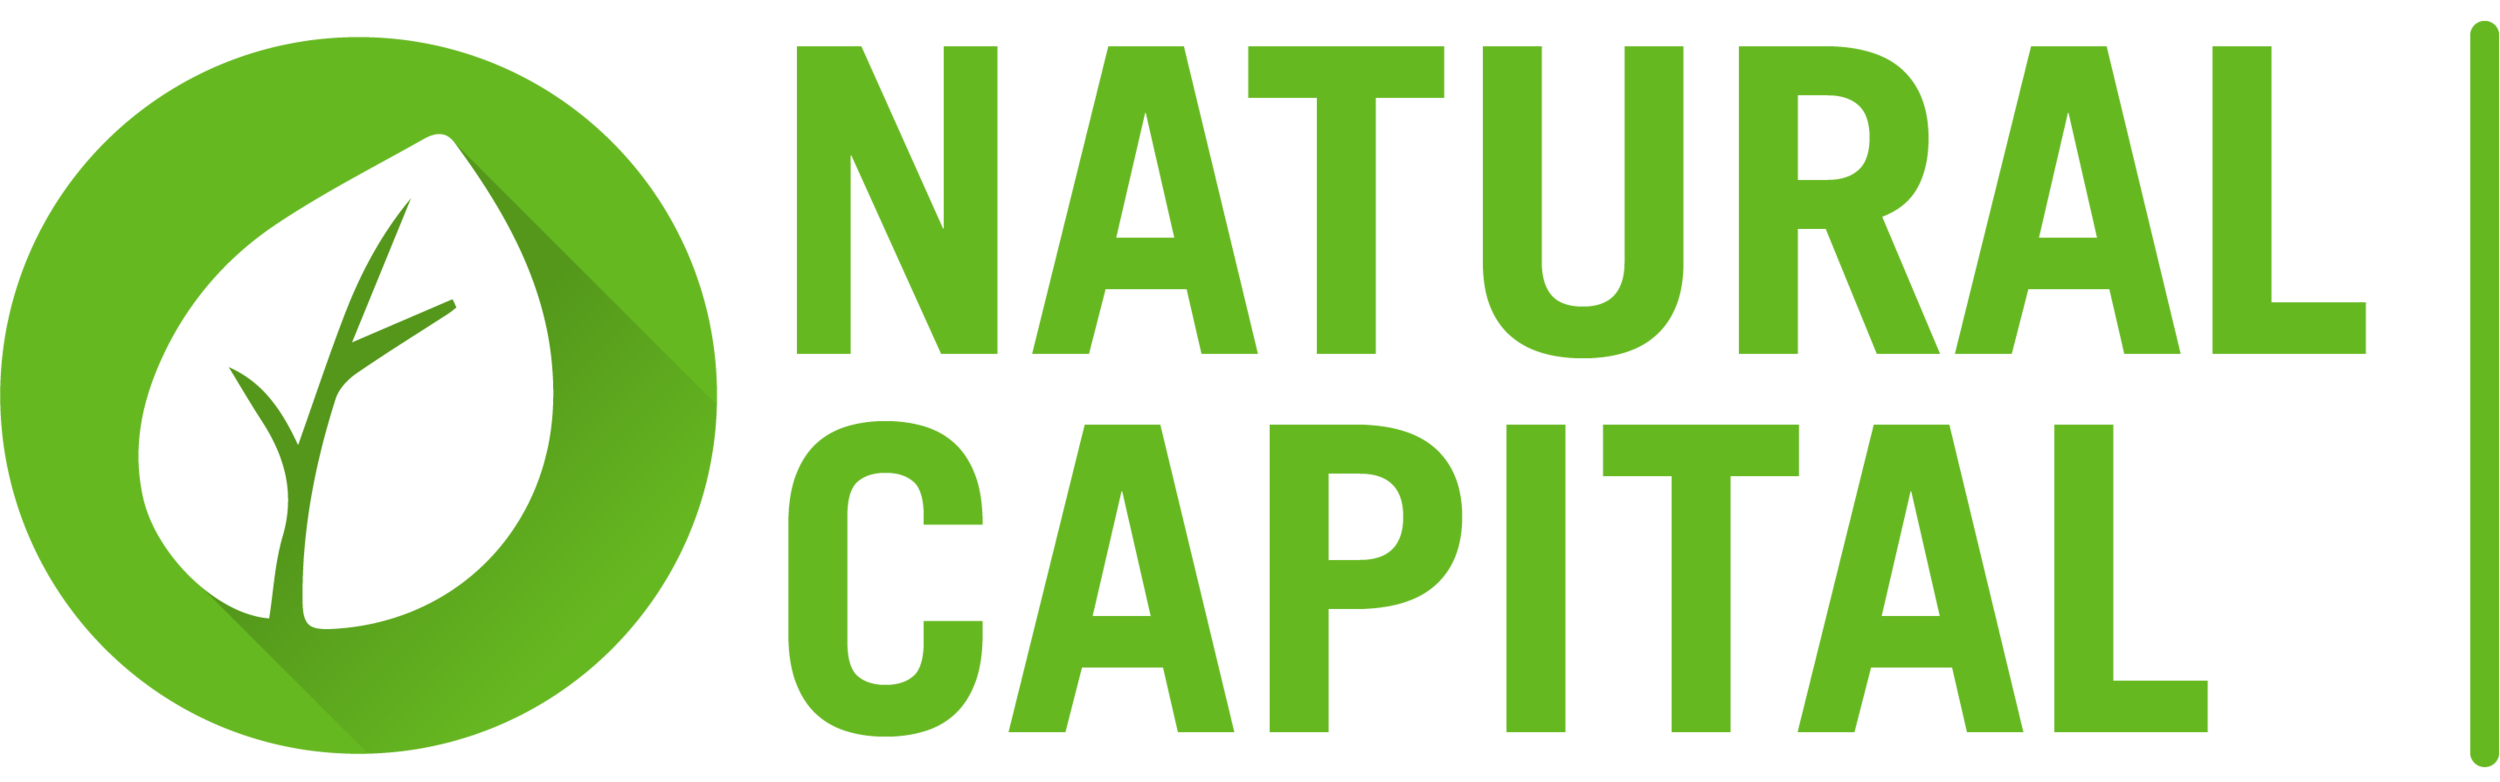 NATURAL CAPITAL.png